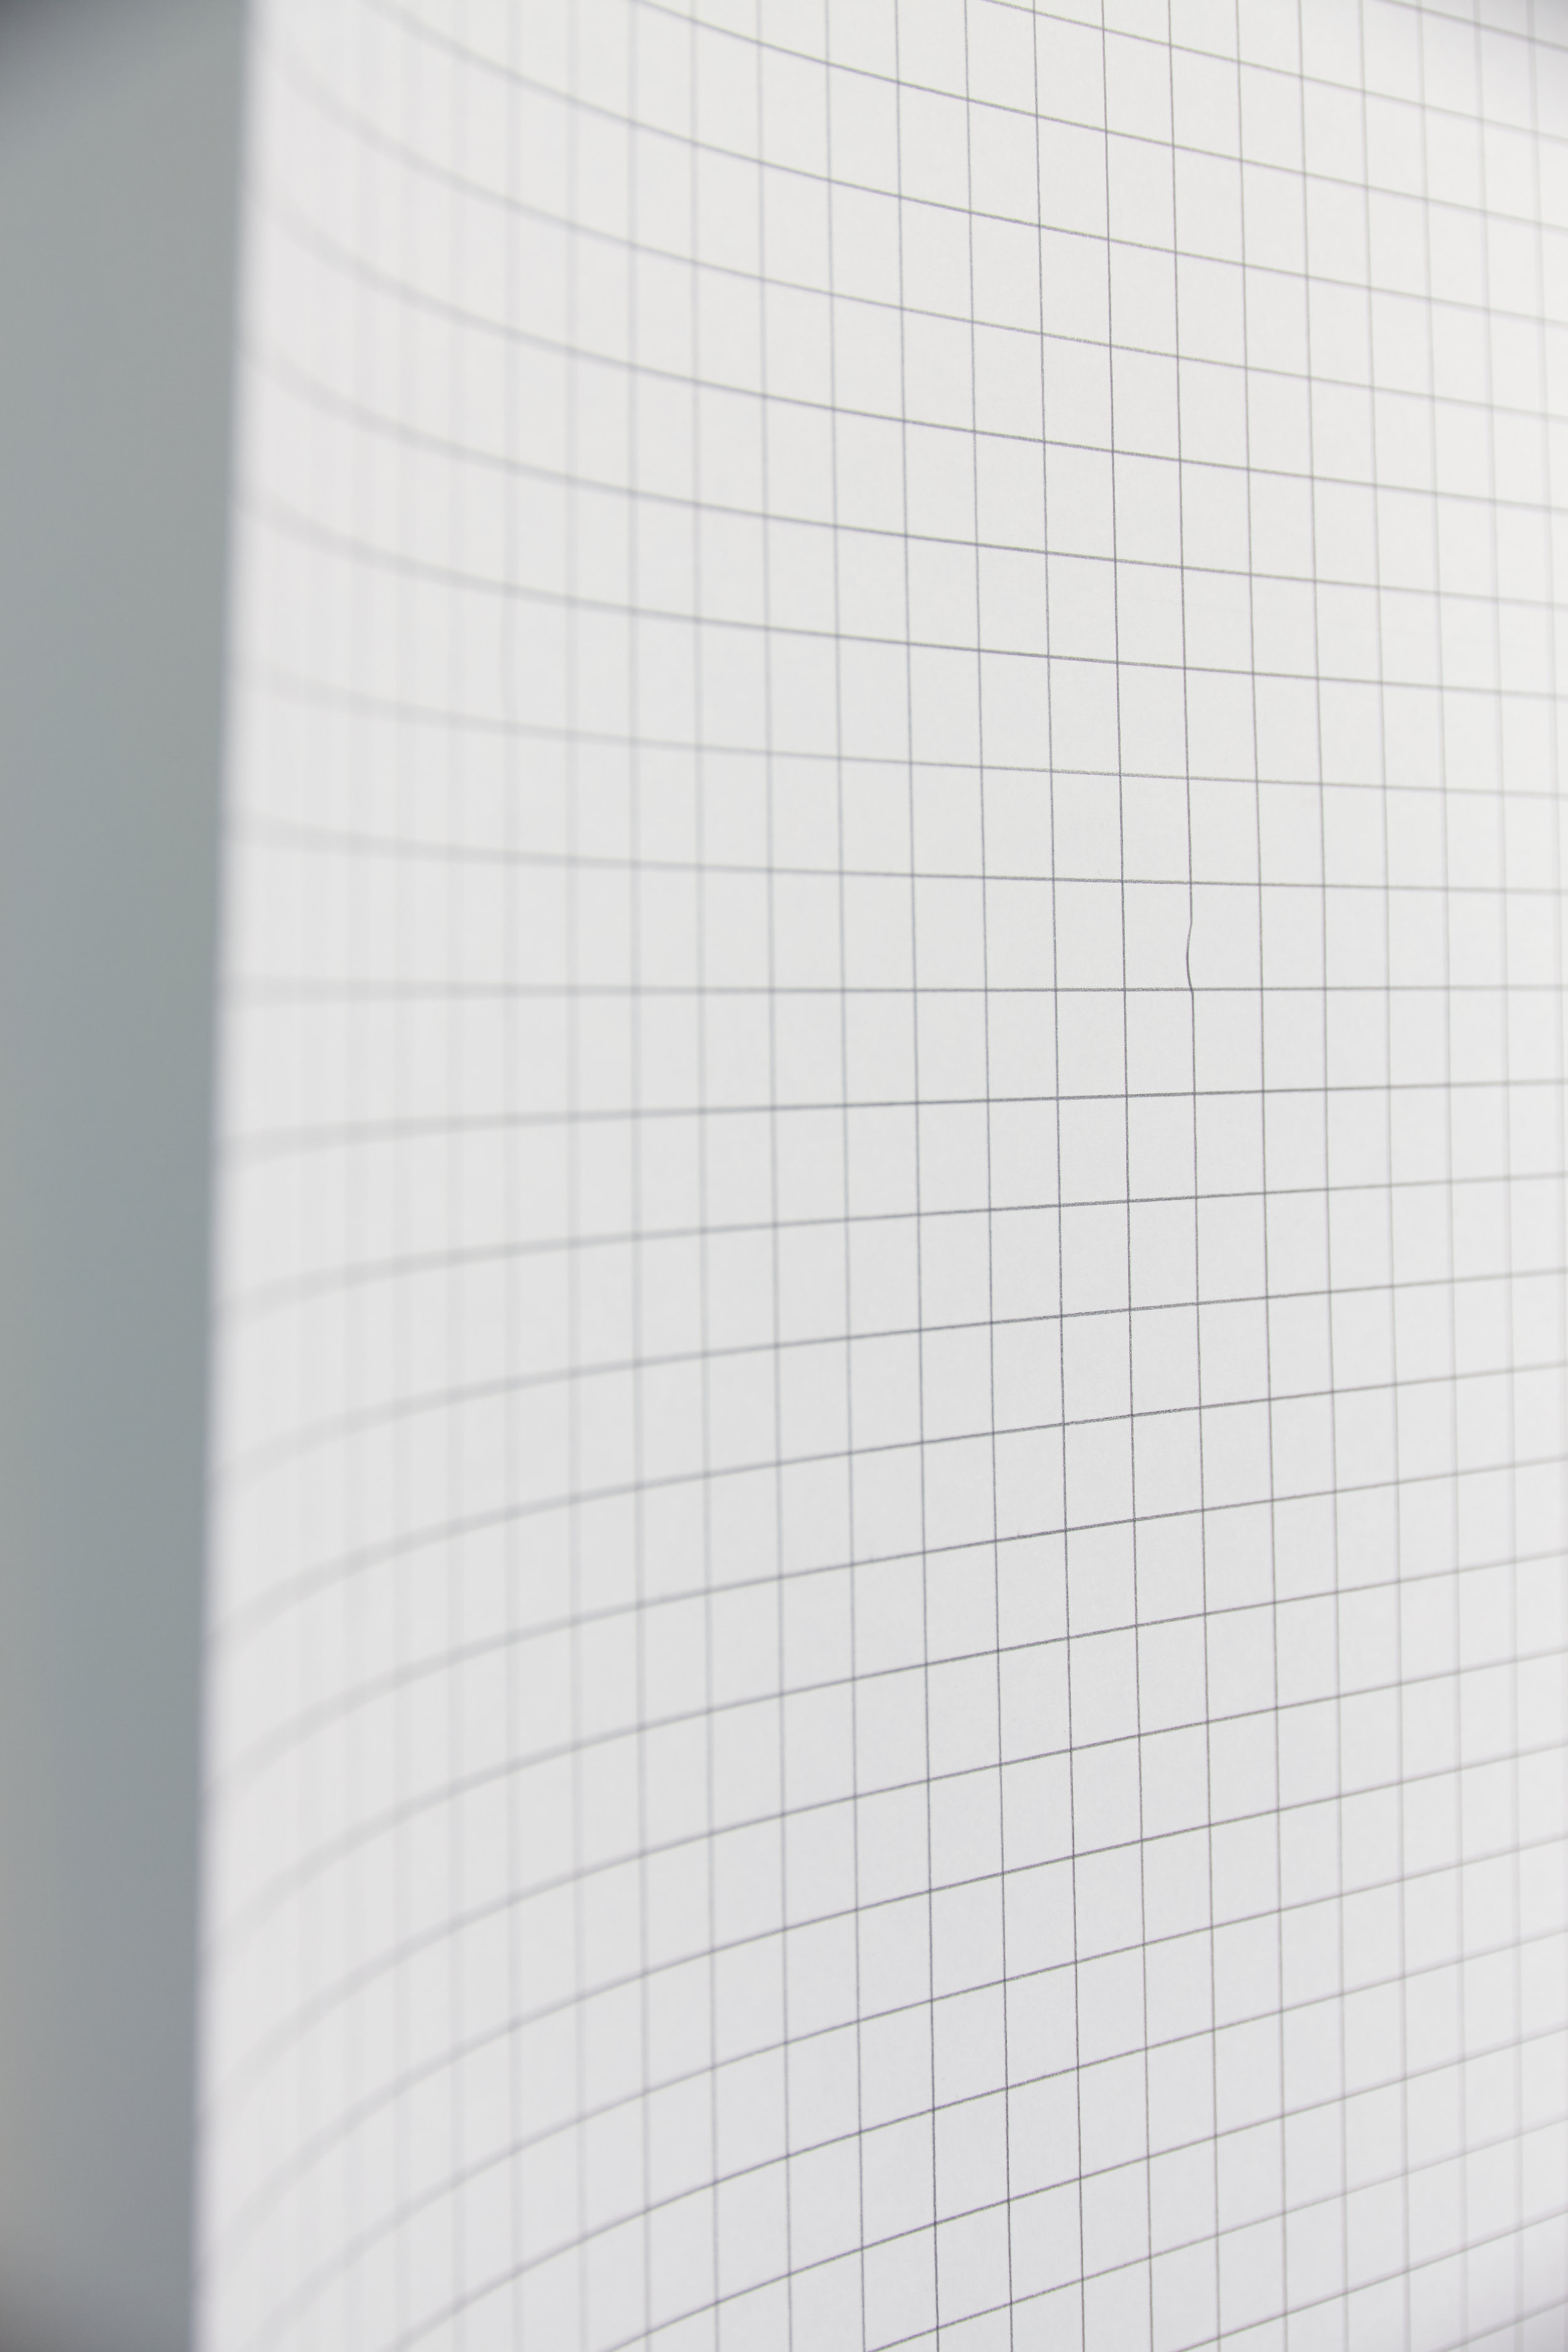 Elísabet Brynhildardóttir   Ég vildi gera rétt / Grid.  2018 (detail). Size of each box is 1.5 cm. Installed drawing is 677 cm x 196 cm. Pencil on paper.  photo Vigfús Birgisson